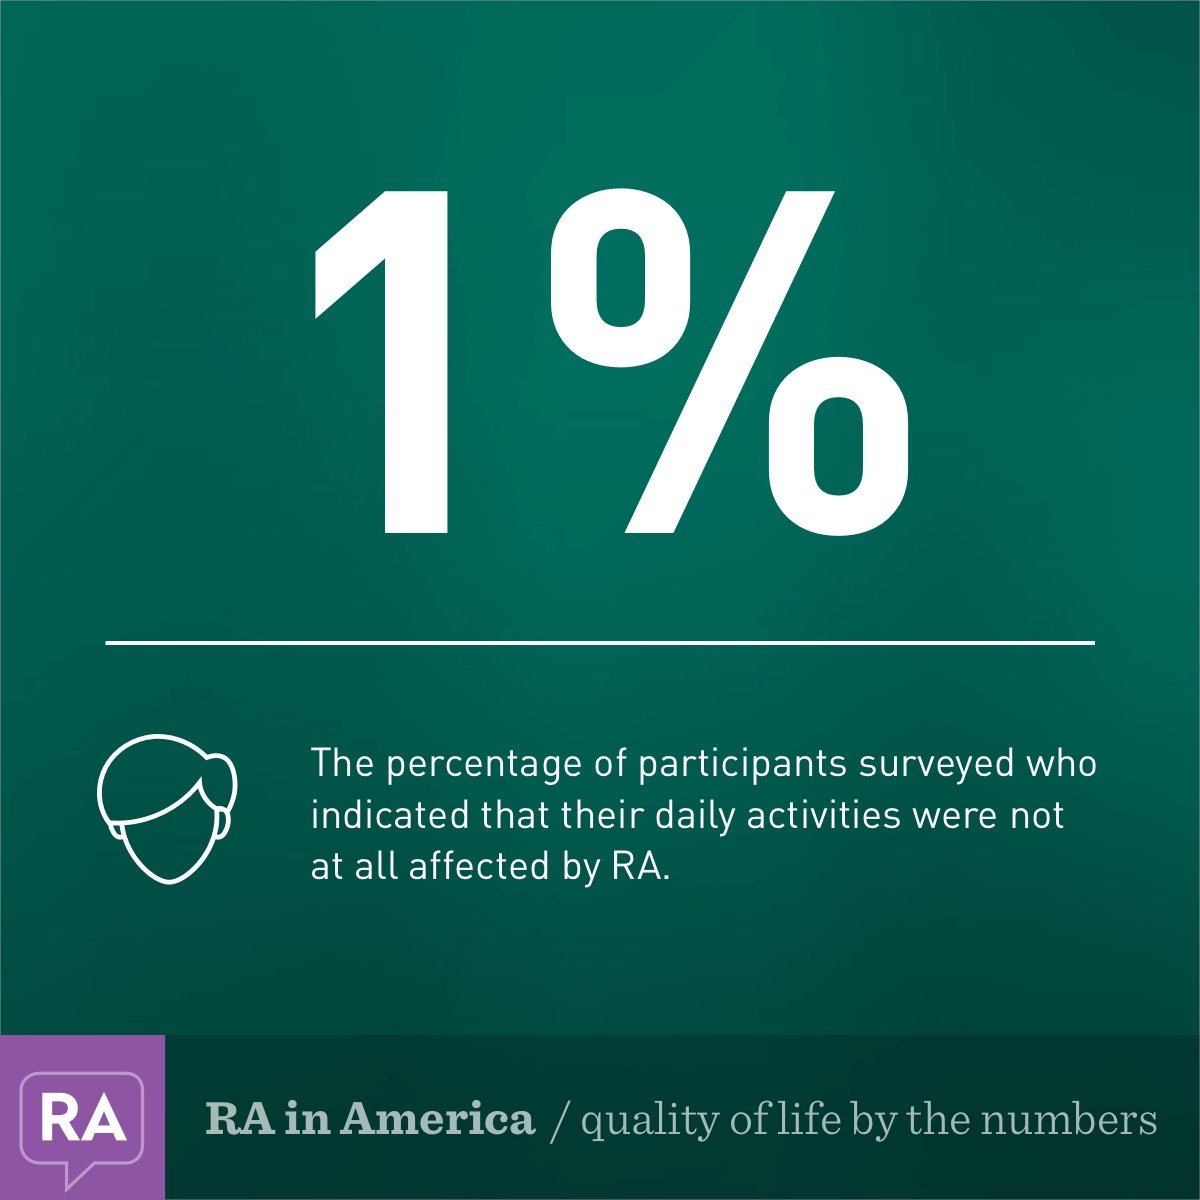 RA quality of life by the numbers